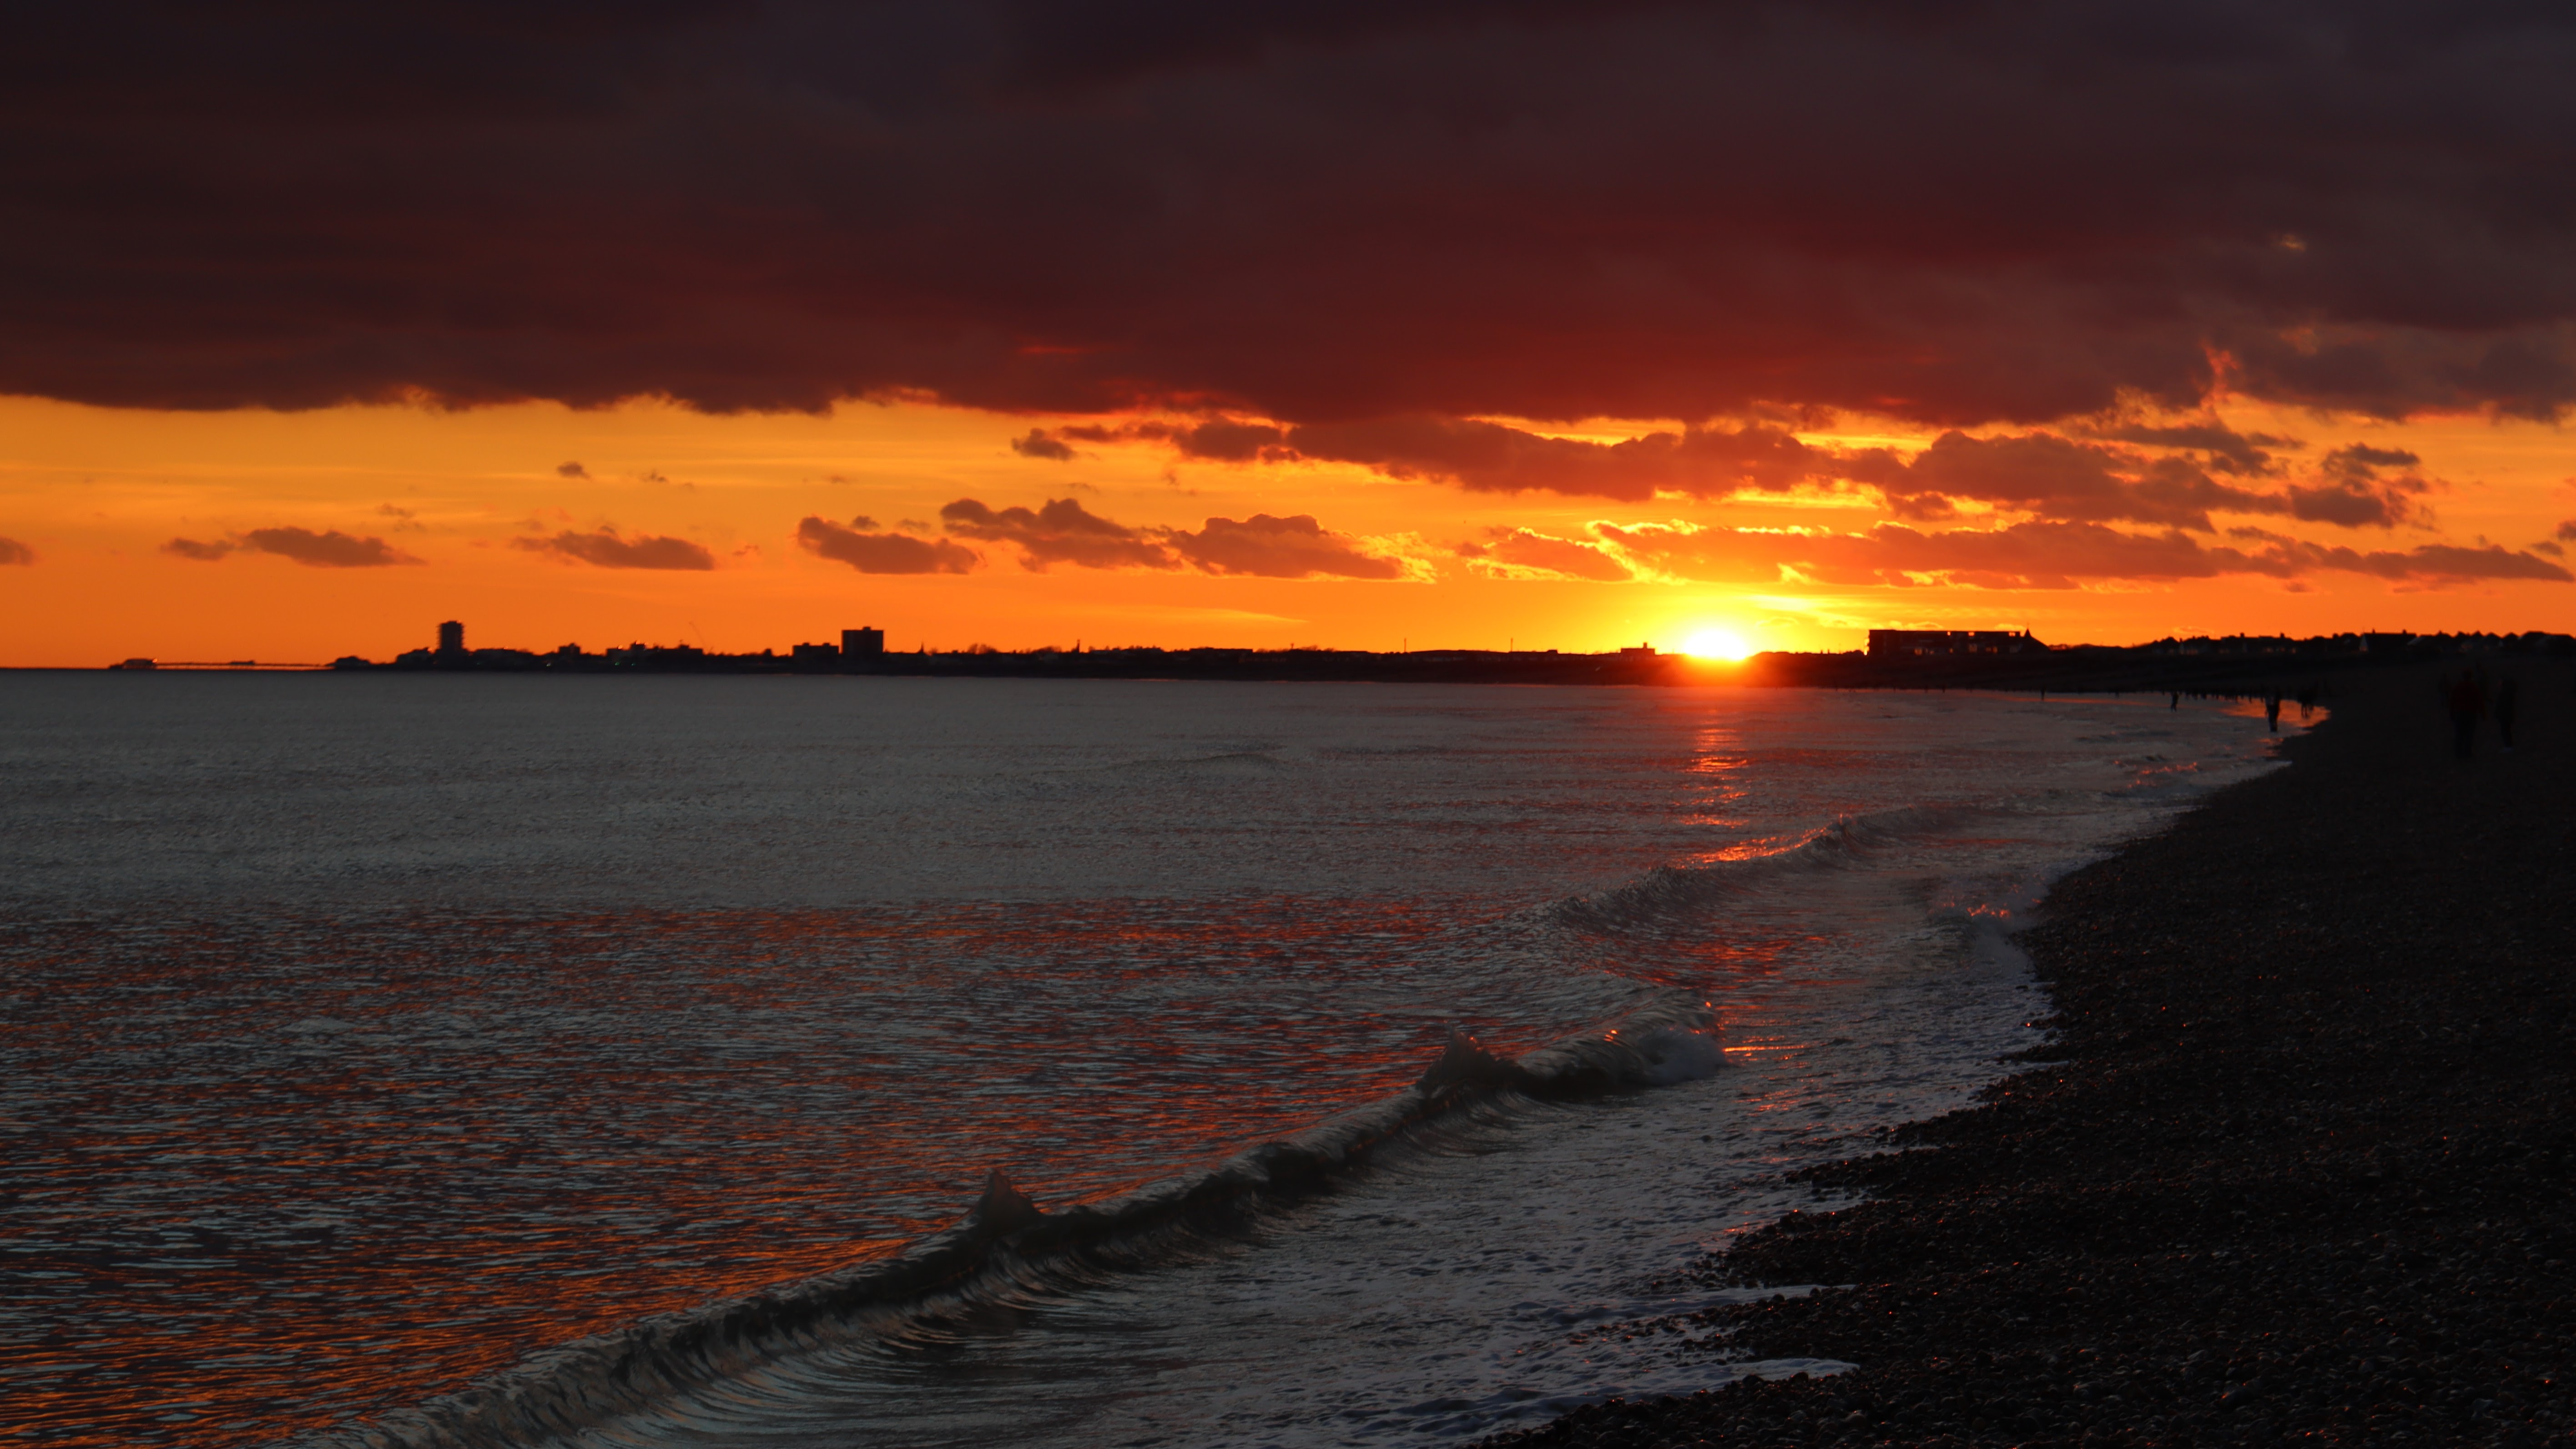 Red sunset beneath a black cloud over the beach.